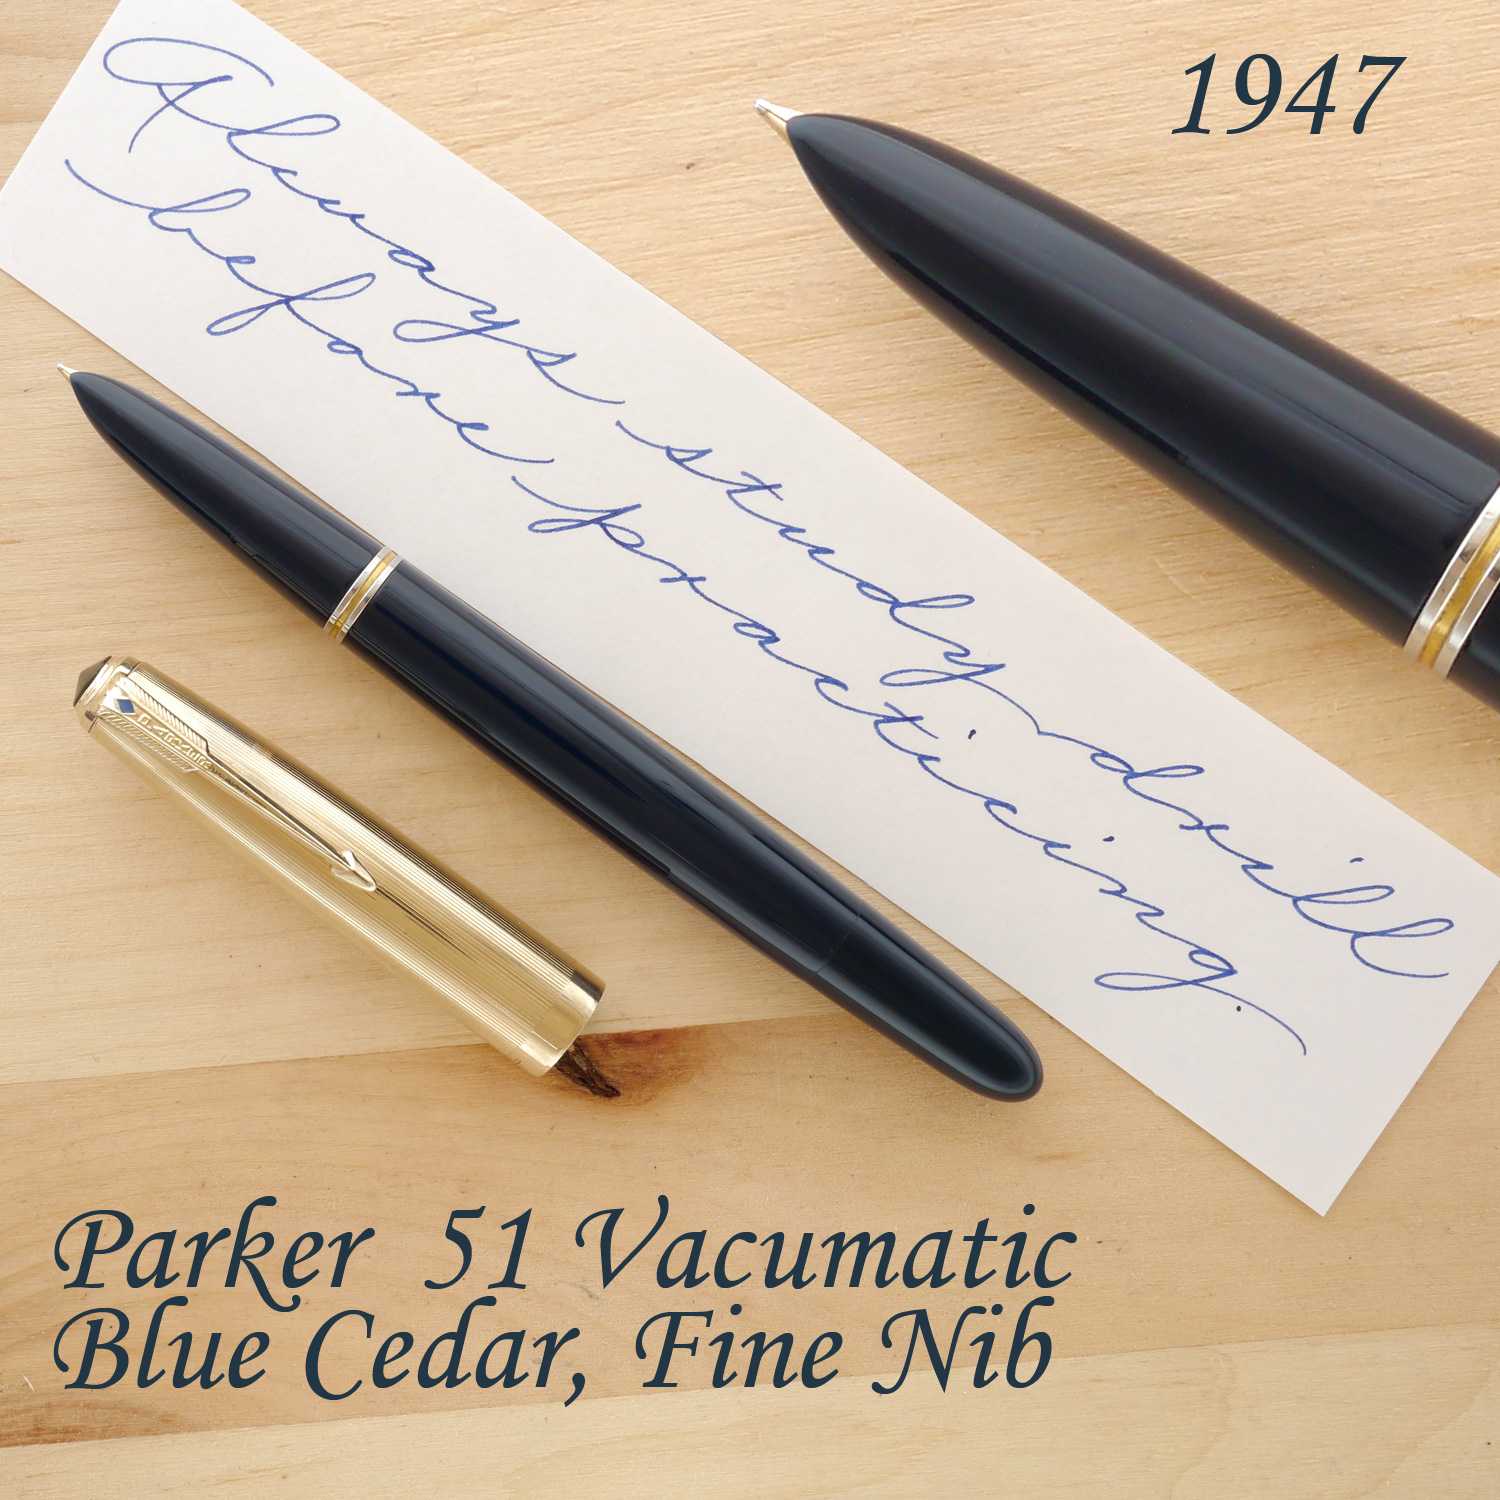 Parker 51 Vacumatic Fountain Pen, Blue Cedar, Gold-Filled Cap, F, uncapped